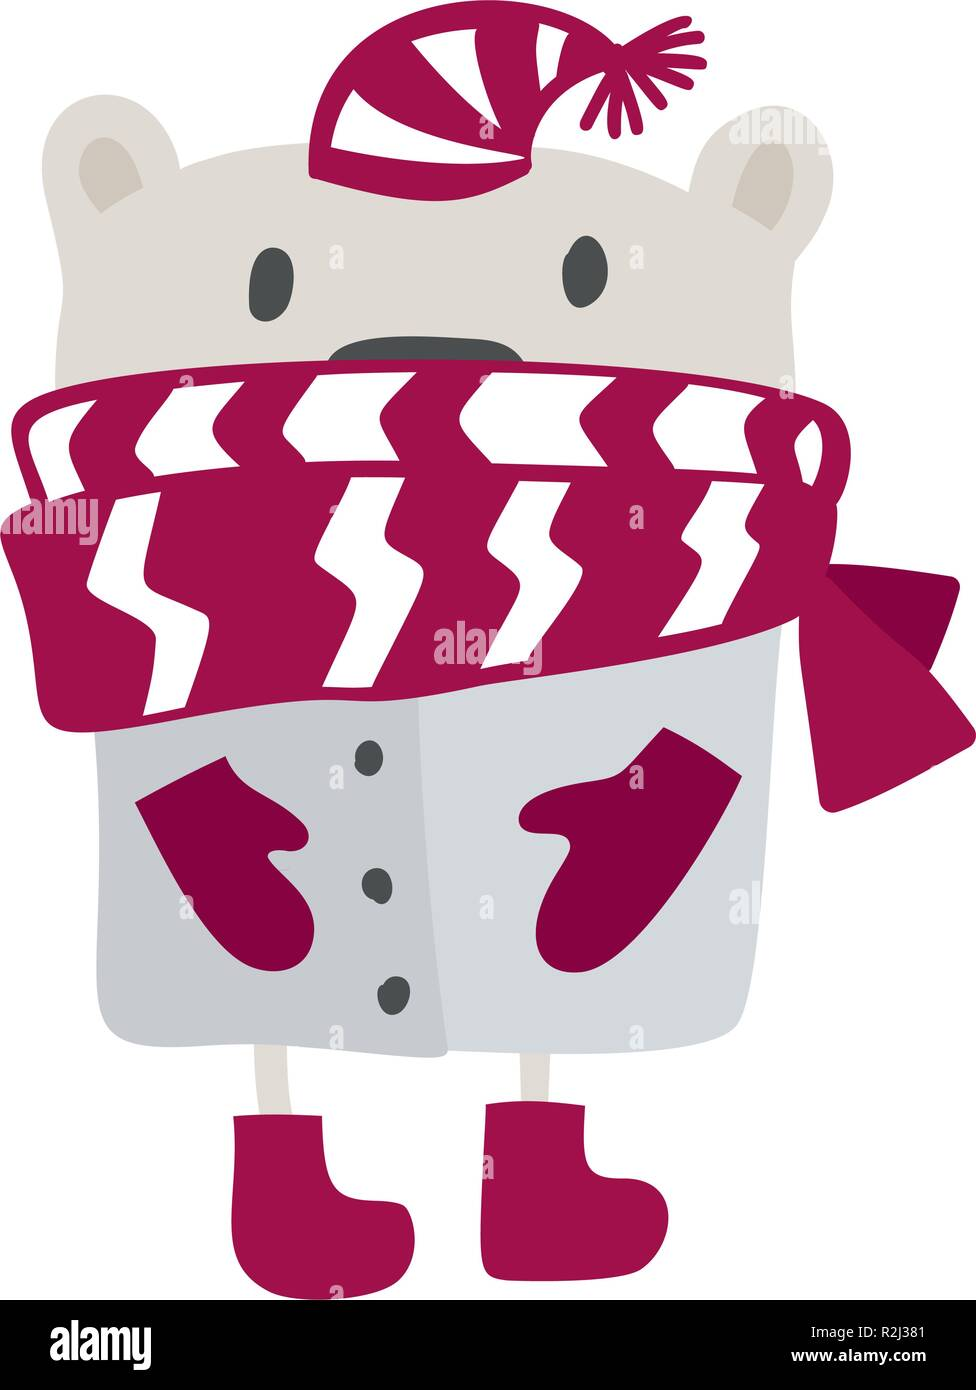 Christmas Scandinavian Style Design Hand Drawn Vector Illustration Of A Cute Funny Winter Bear In A Muffler Going For A Walk Isolated Objects On White Background Concept For Kids Apparel Nursery Print